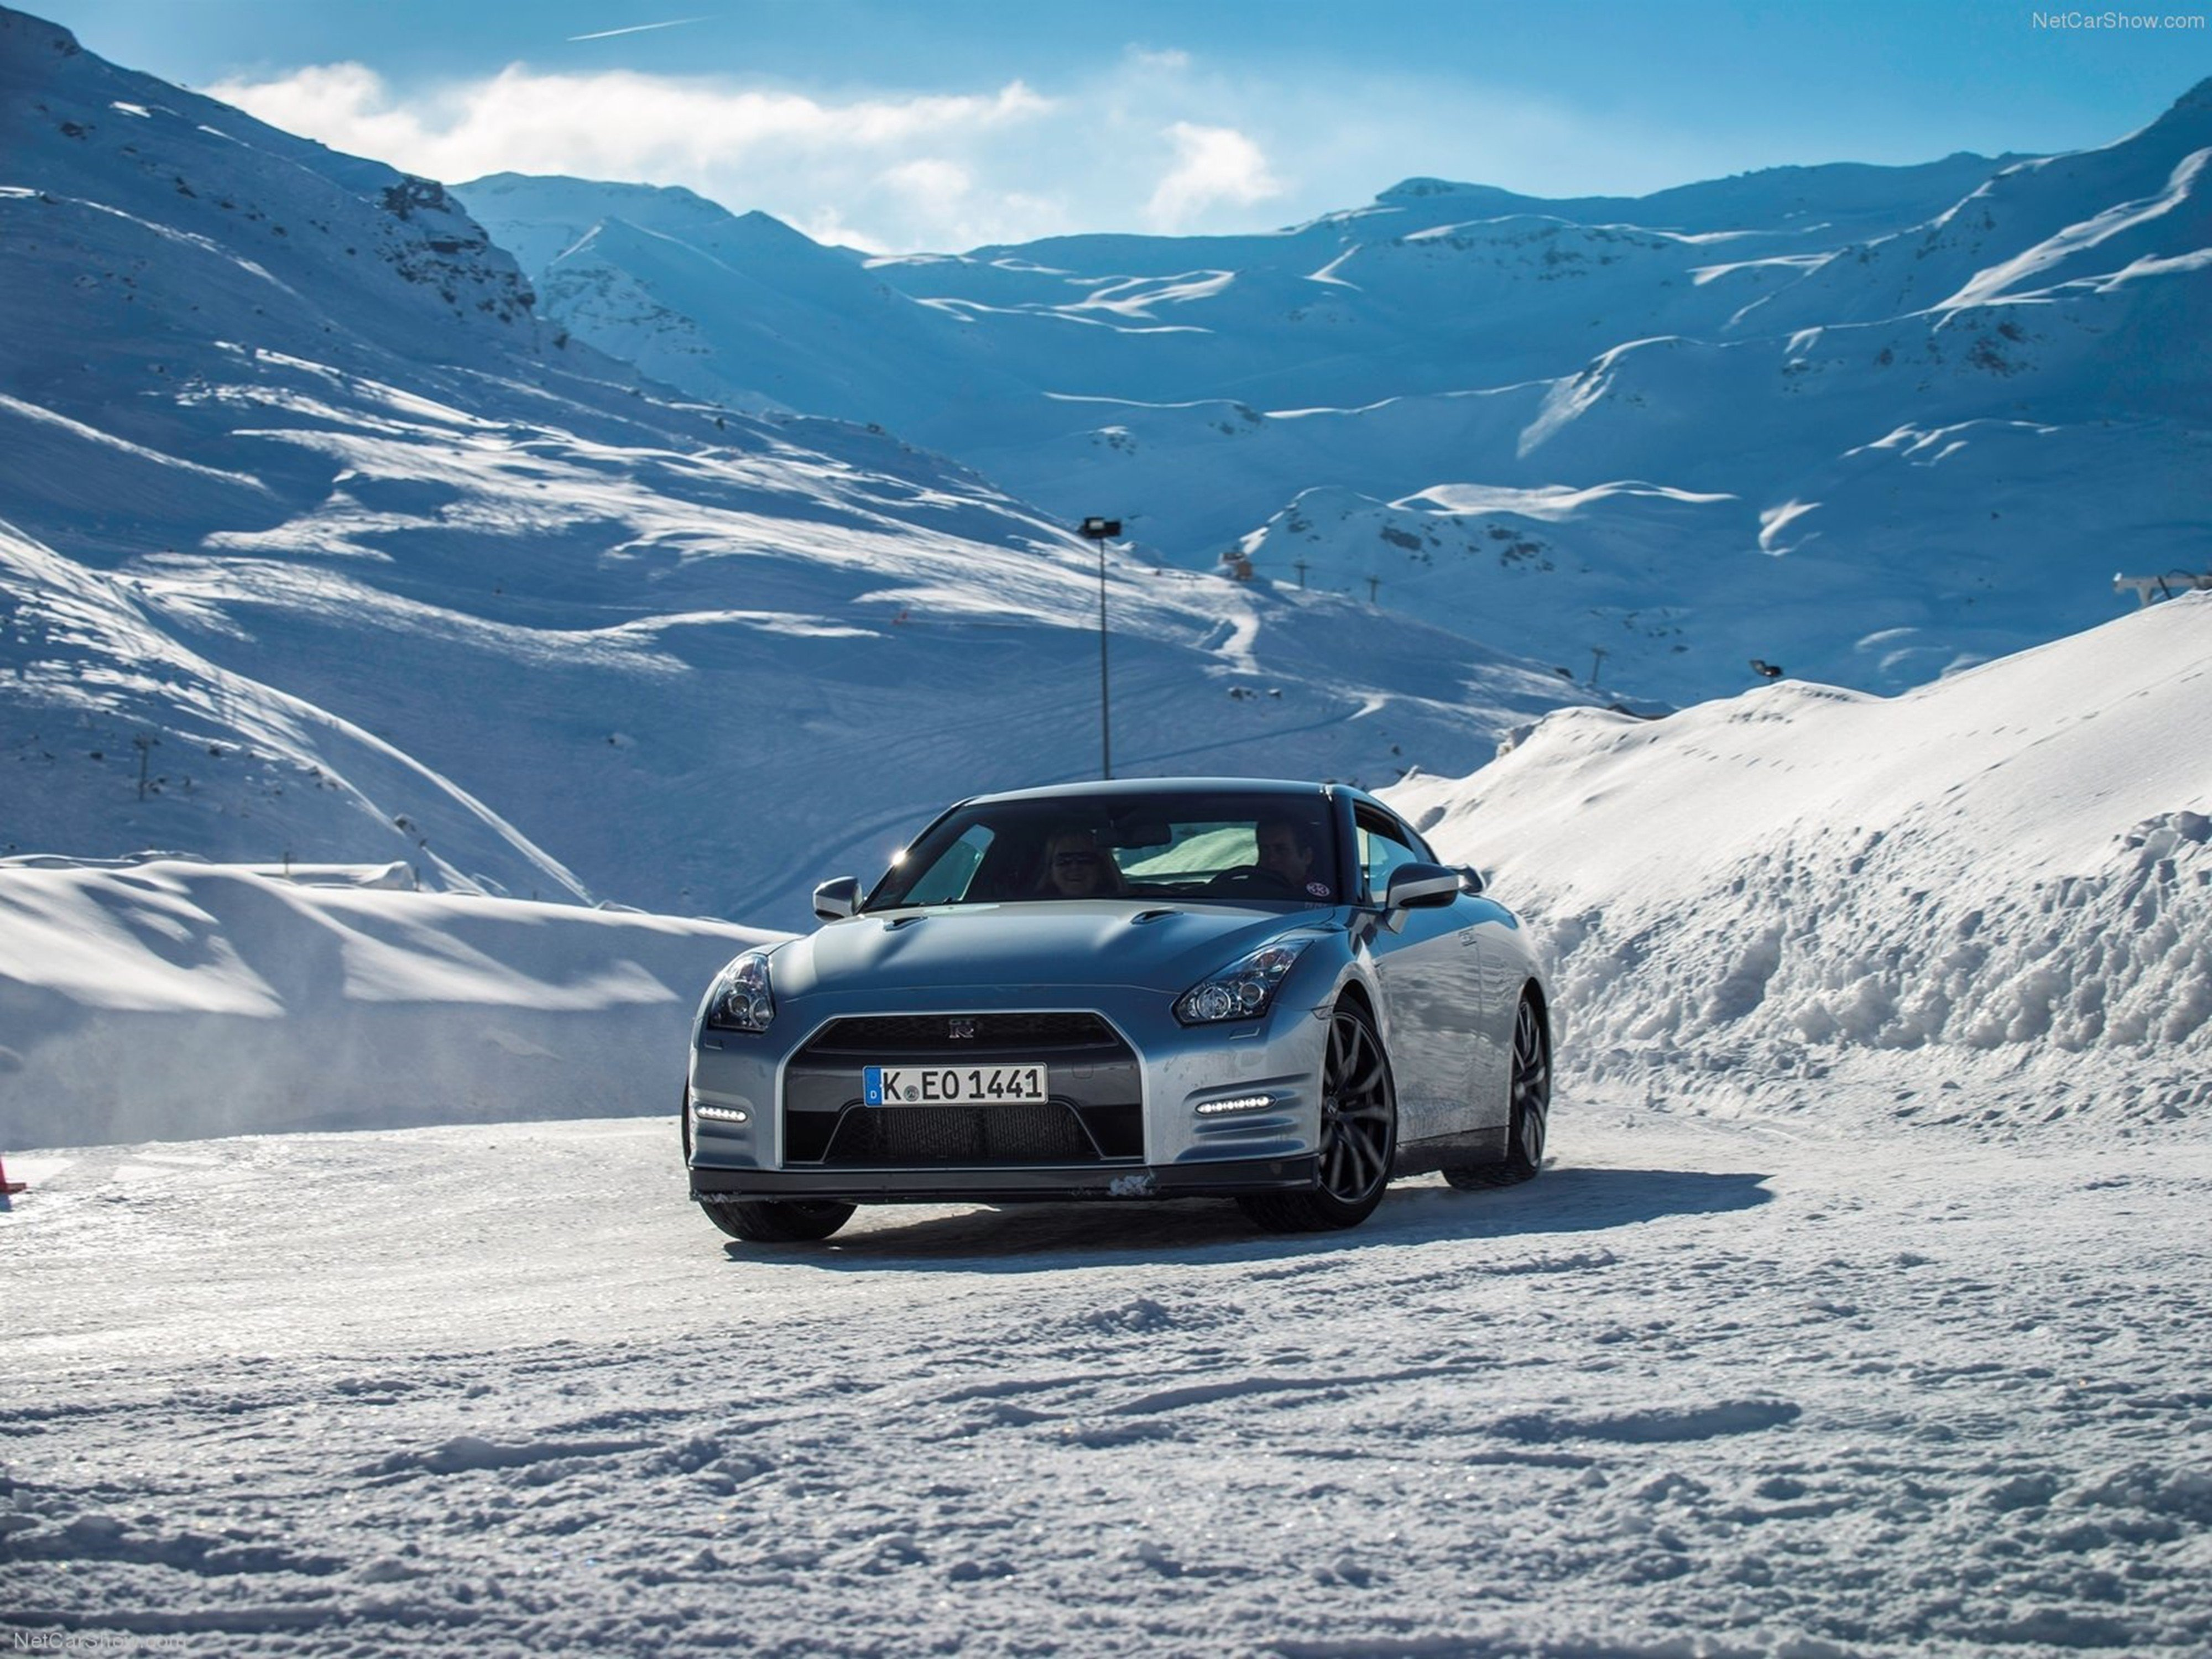 Nissan GT R 2015 supercar car godzilar snow wallpaper 0d 4000x3000